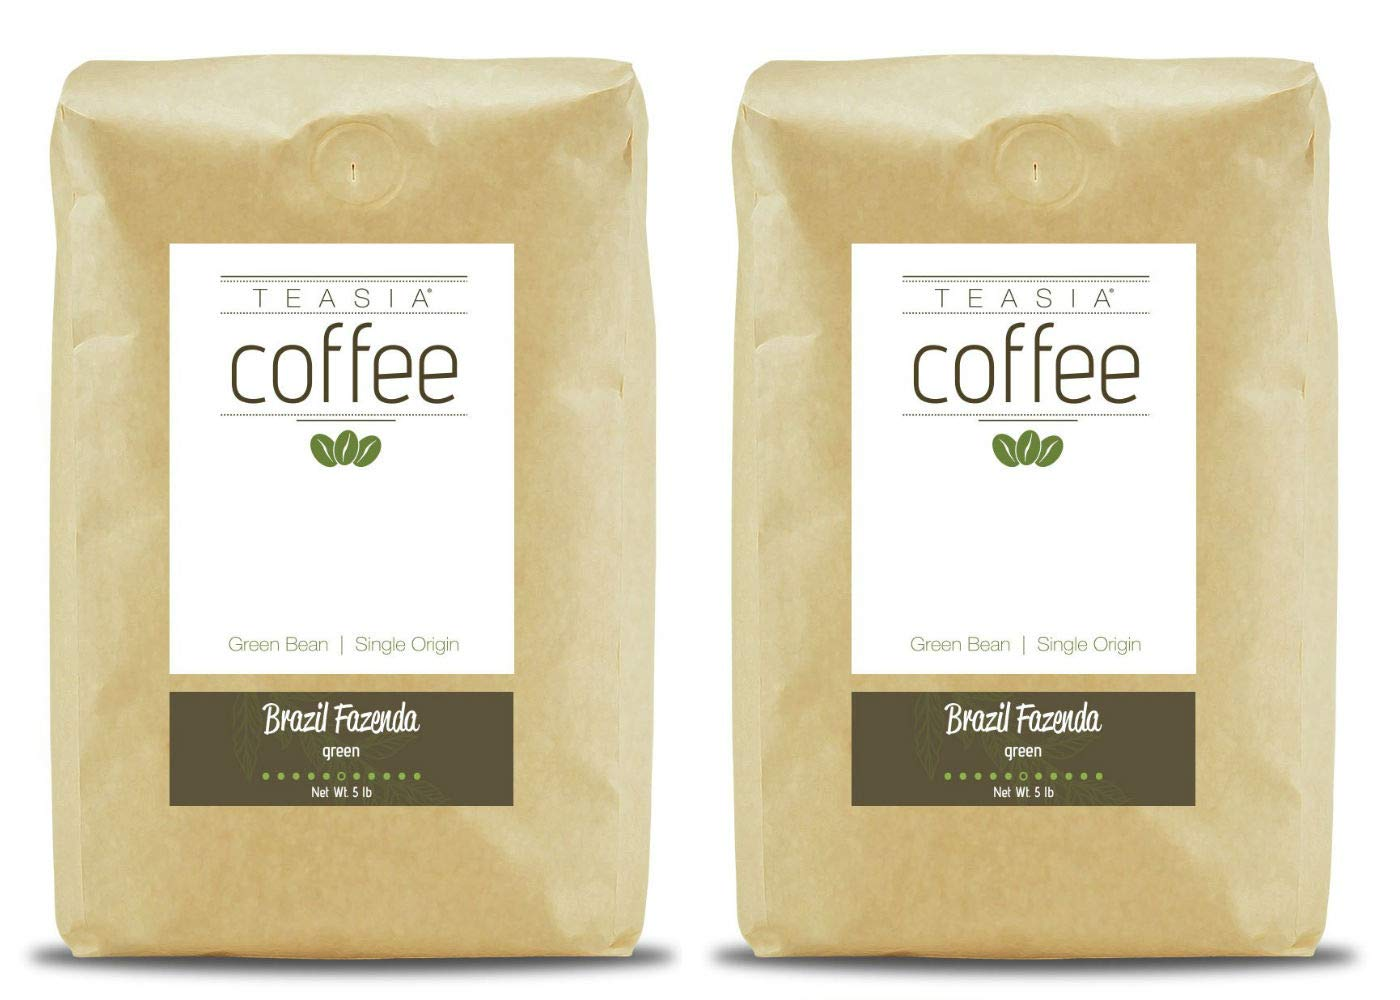 Teasia Coffee, Brazil Fazenda, 2-Pack, Single Origin, Green Unroasted Whole Coffee Beans, 5-Pound Bag